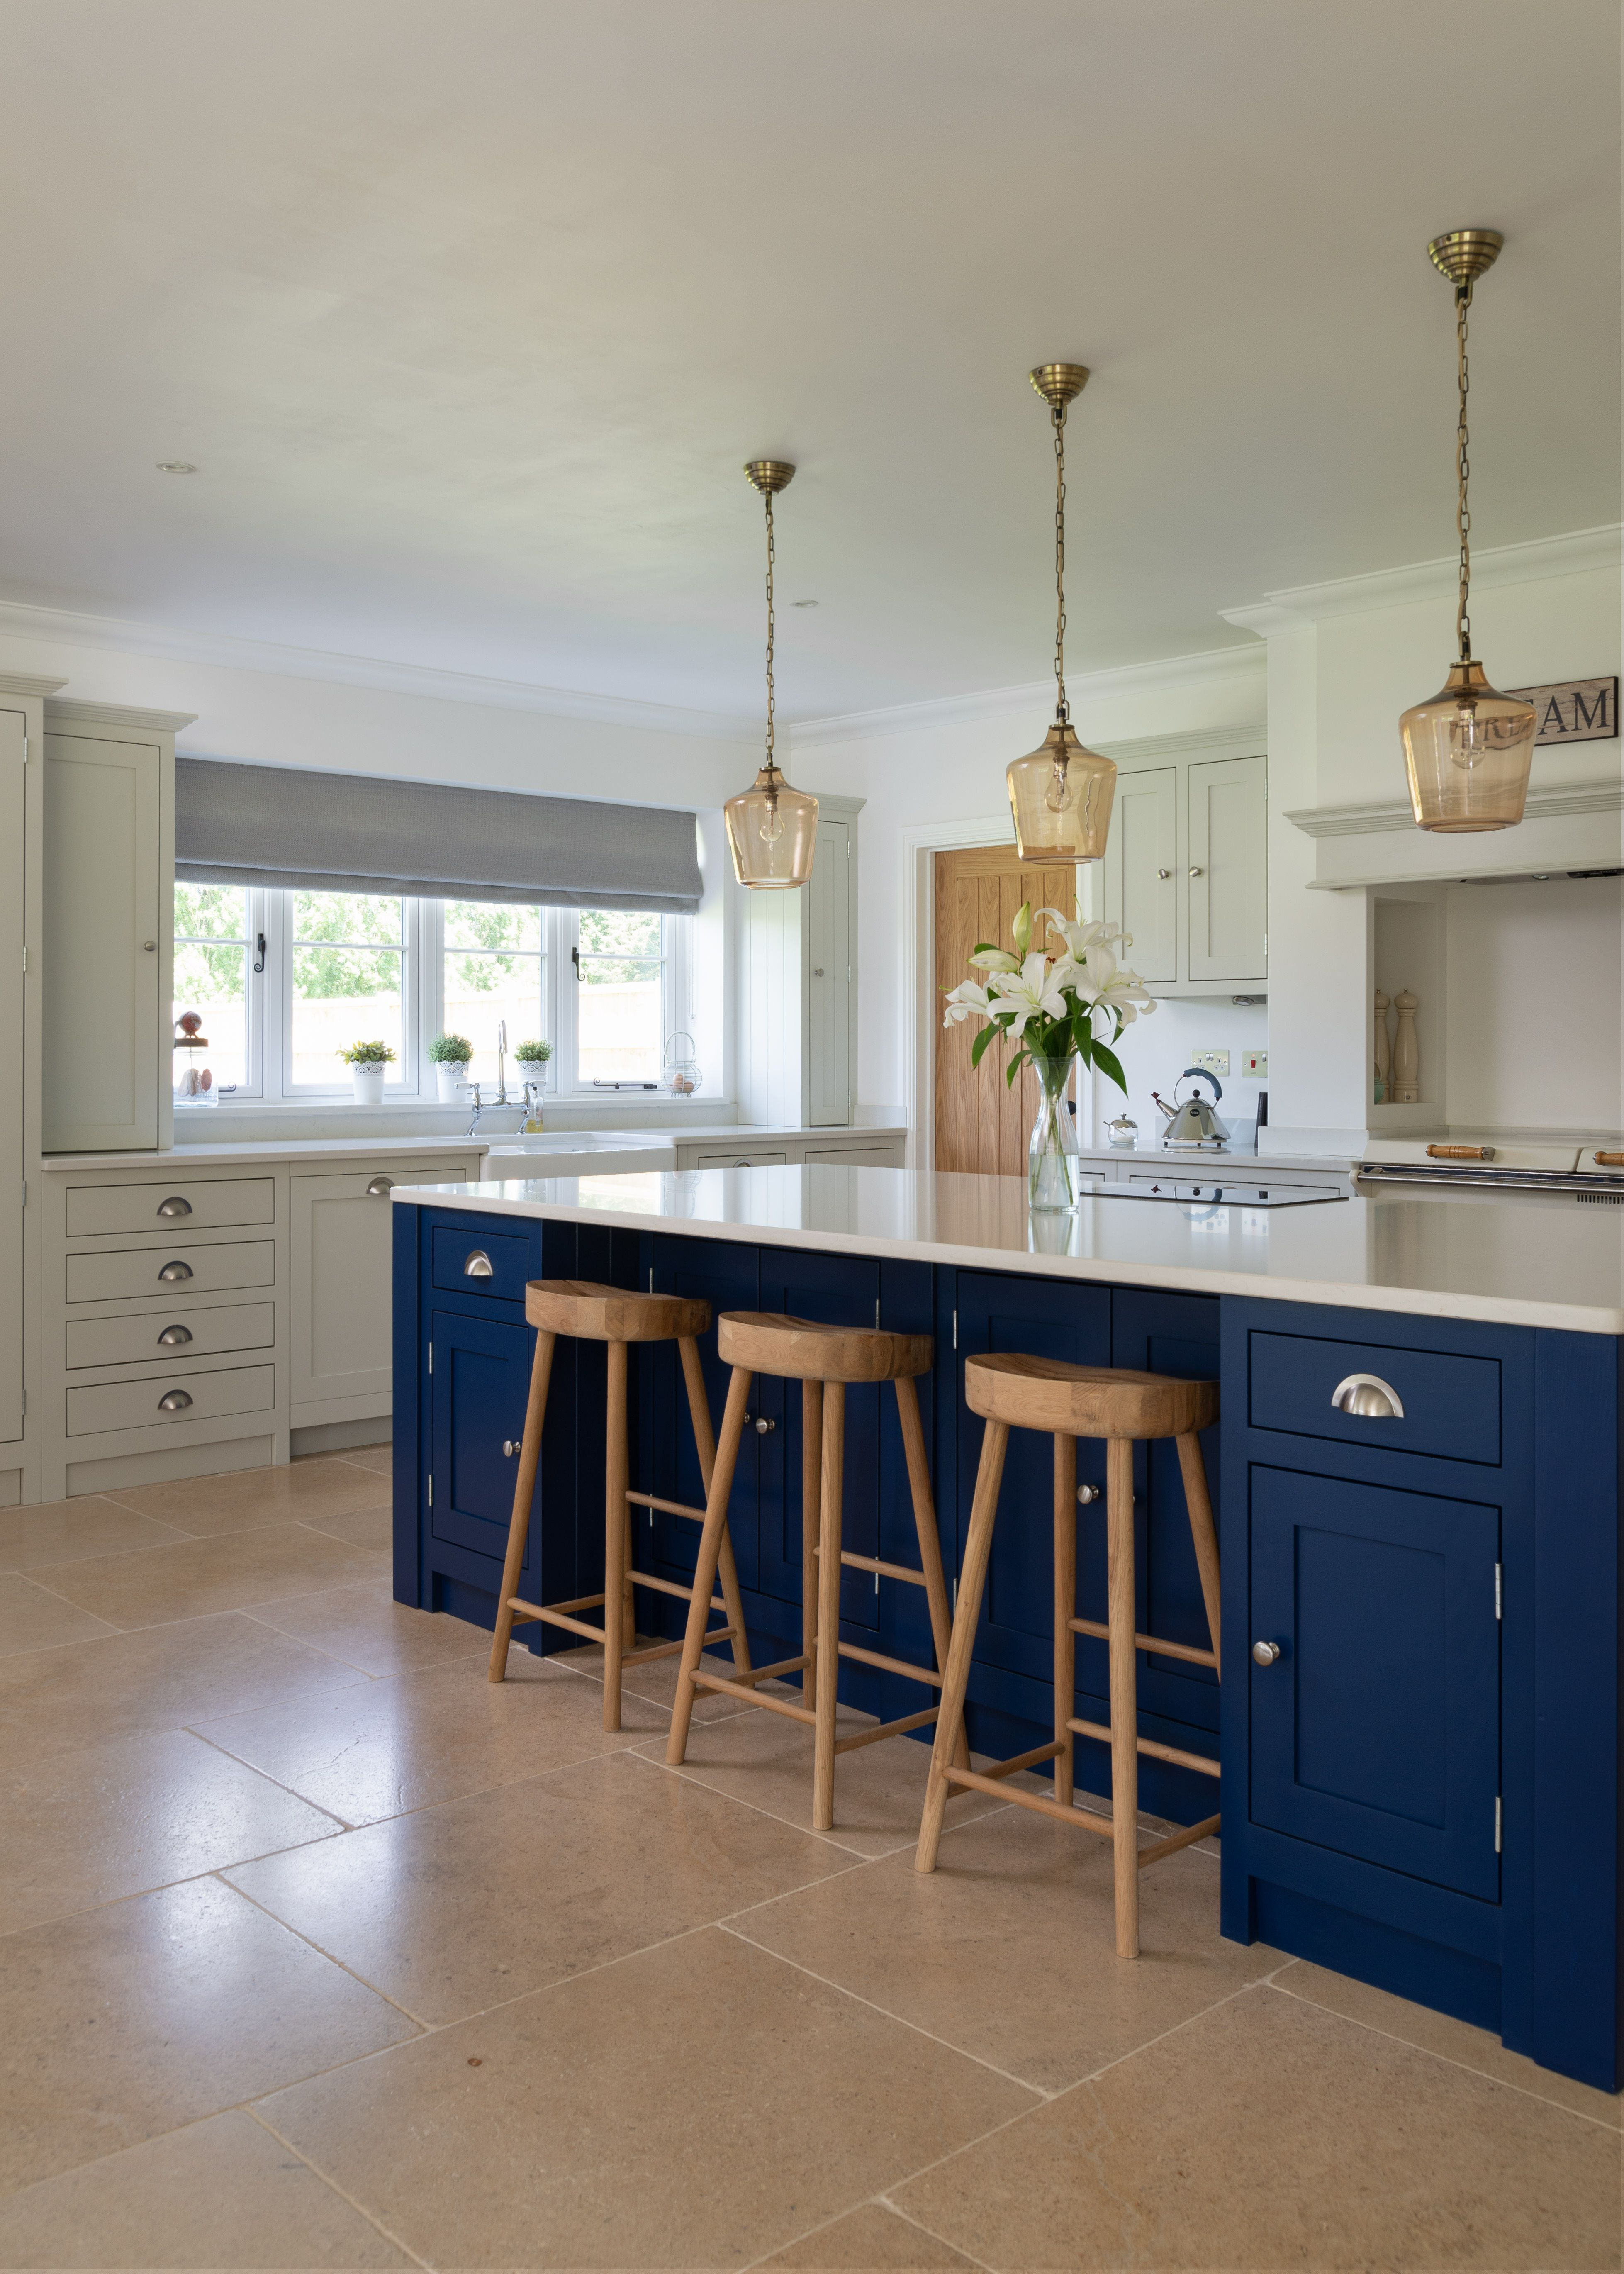 www.theshakerkitchen.co (With images) | Shaker kitchen ...